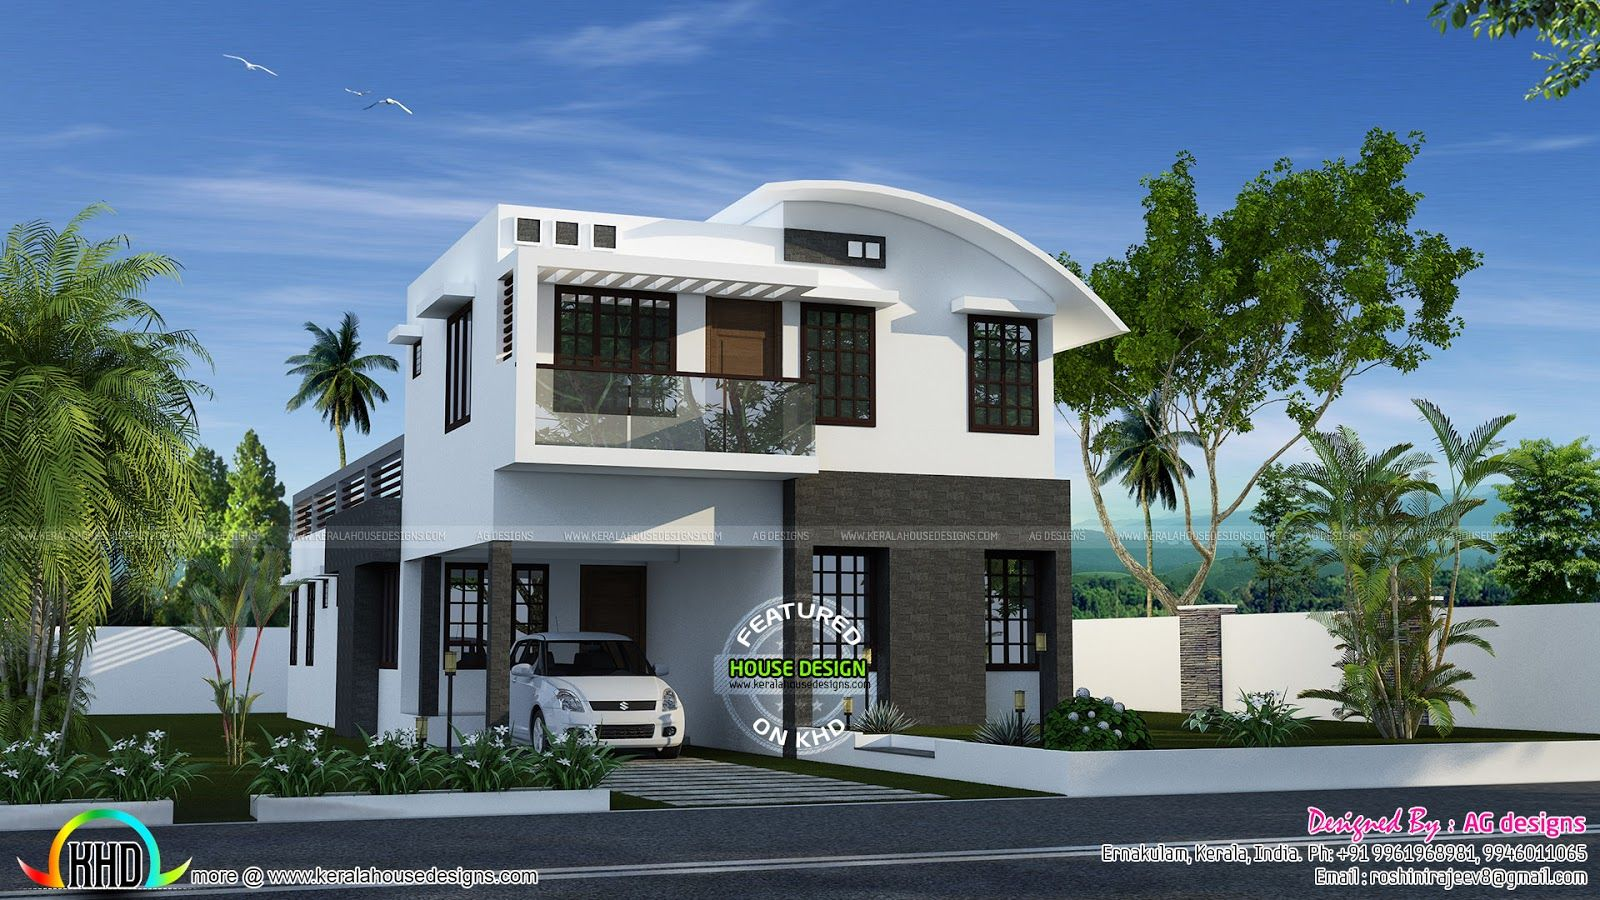 Home Design   Compact Slate 30x40 House Front Elevation Designs  Home Design   Compact Slate 30x40 House Front Elevation Designs  . Home Elevation Designs. Home Design Ideas